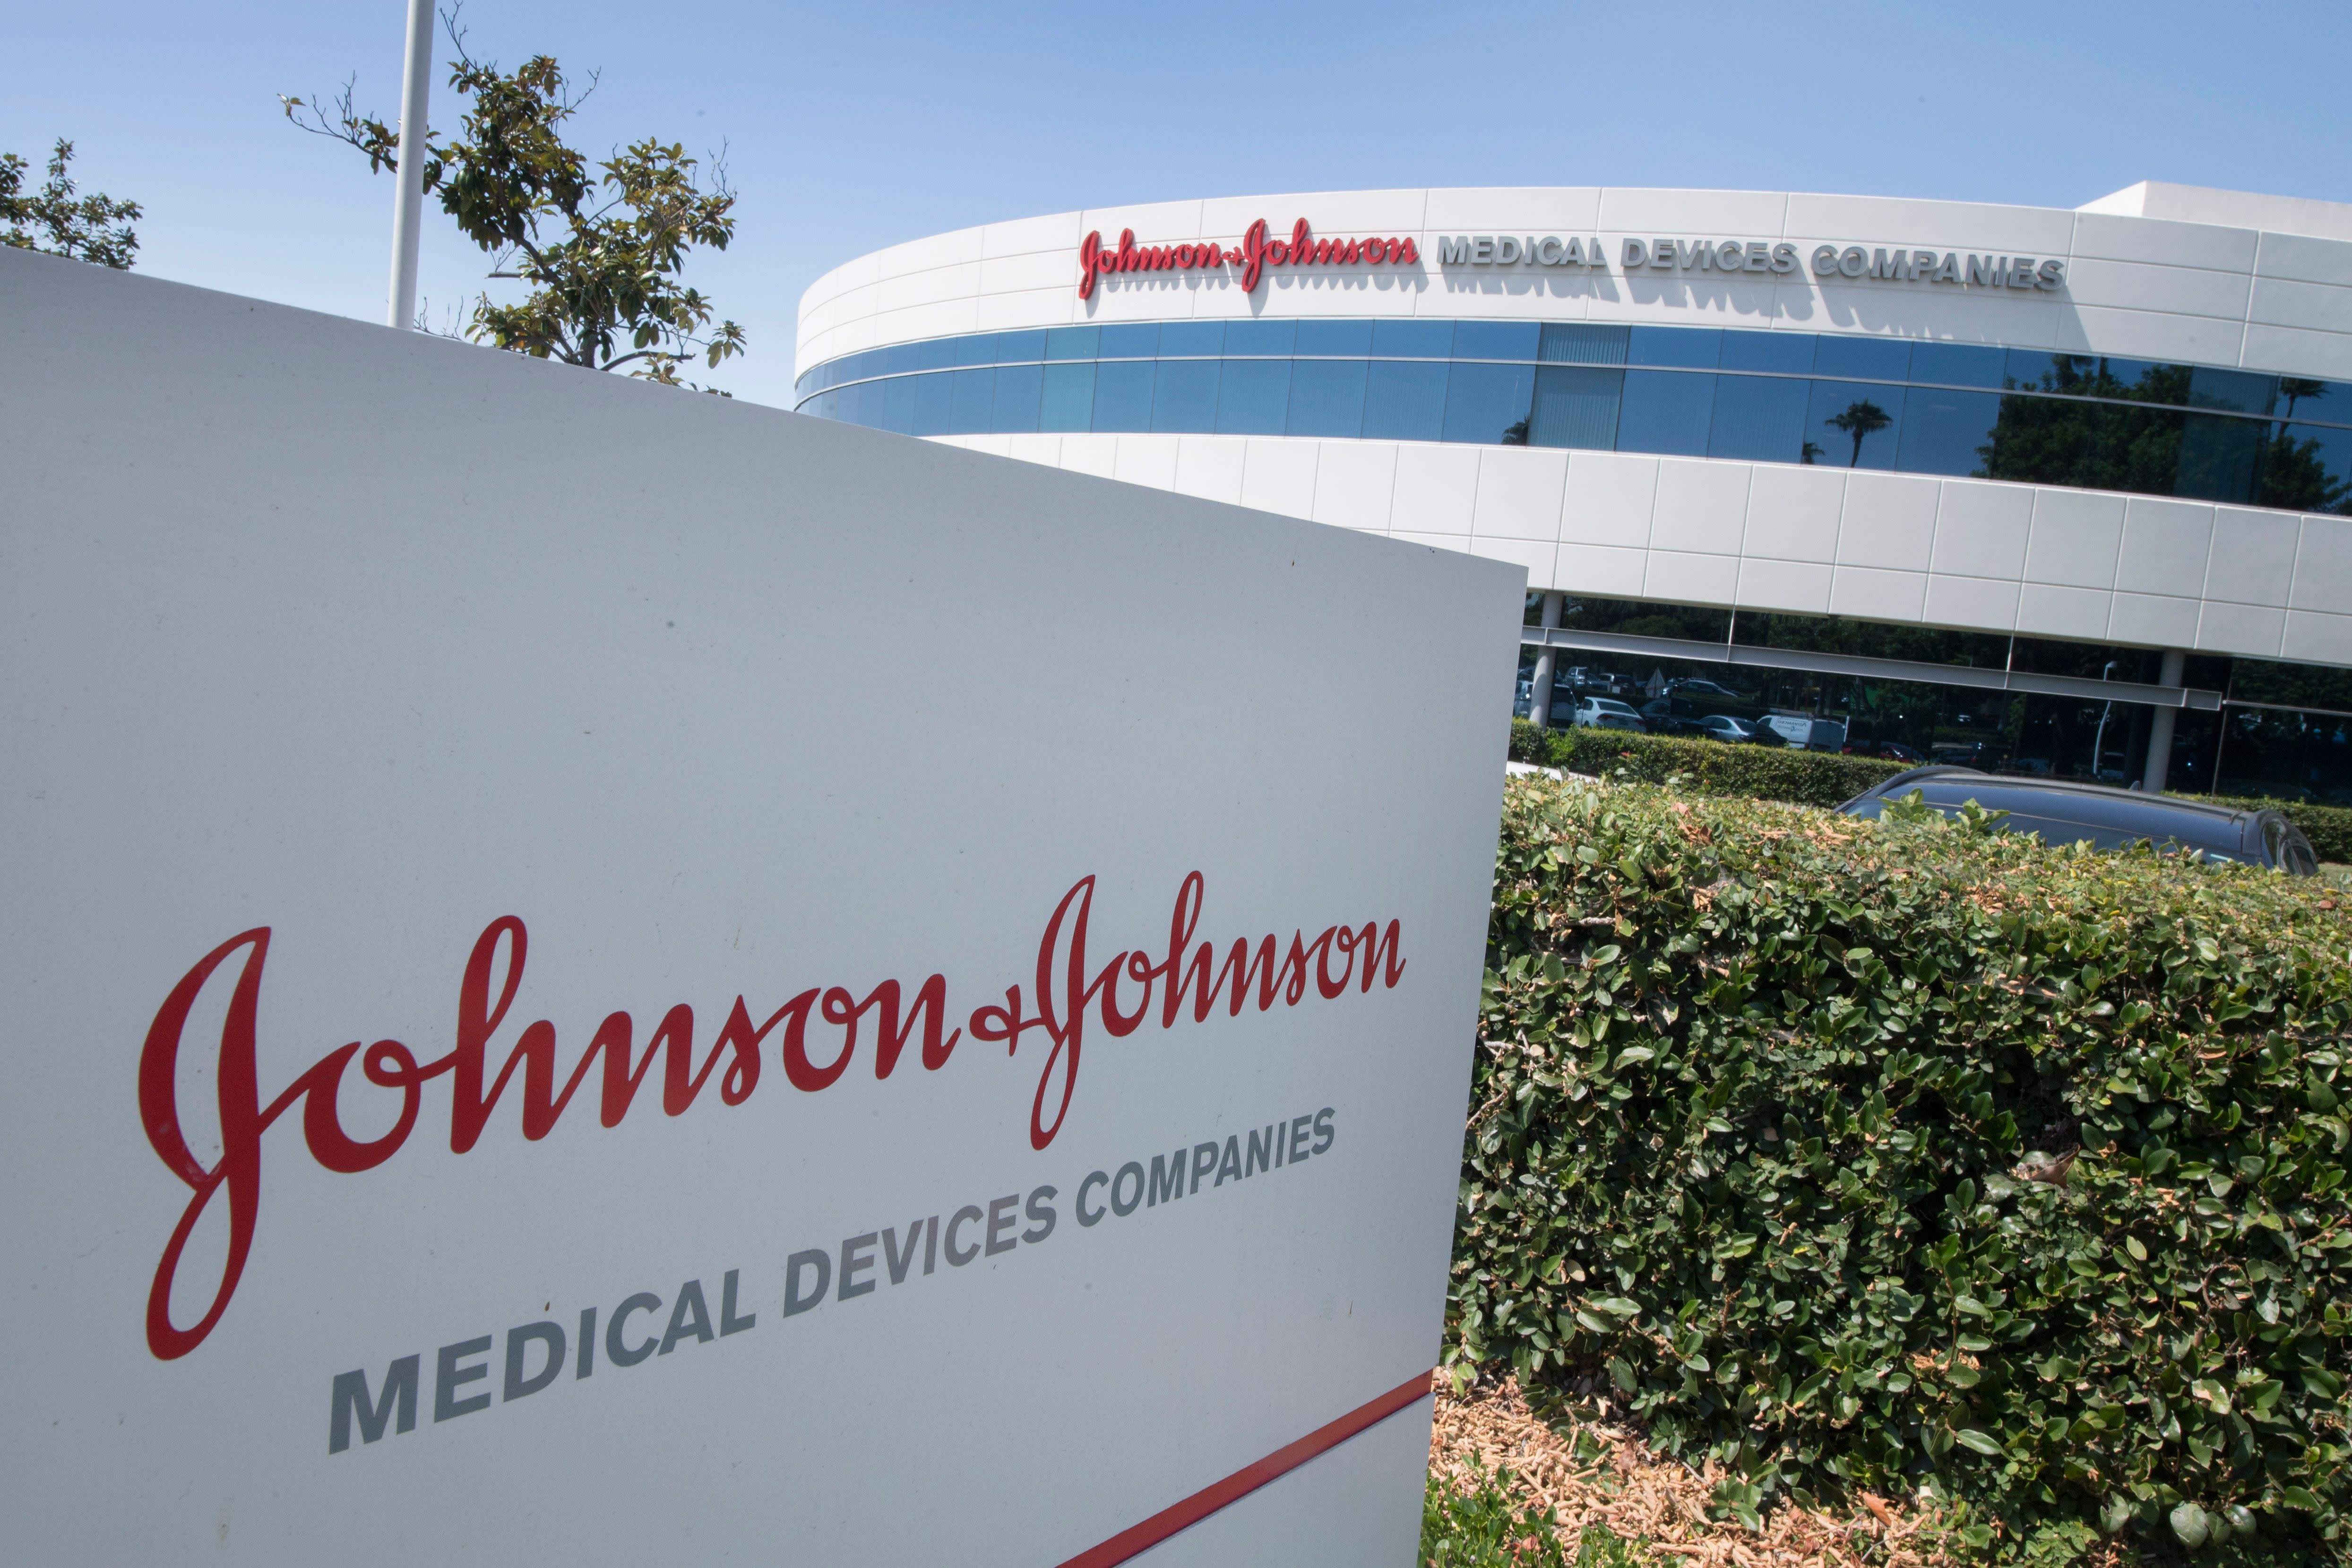 JNJ sheds light on why its settling some opioid cases instead of fighting in court